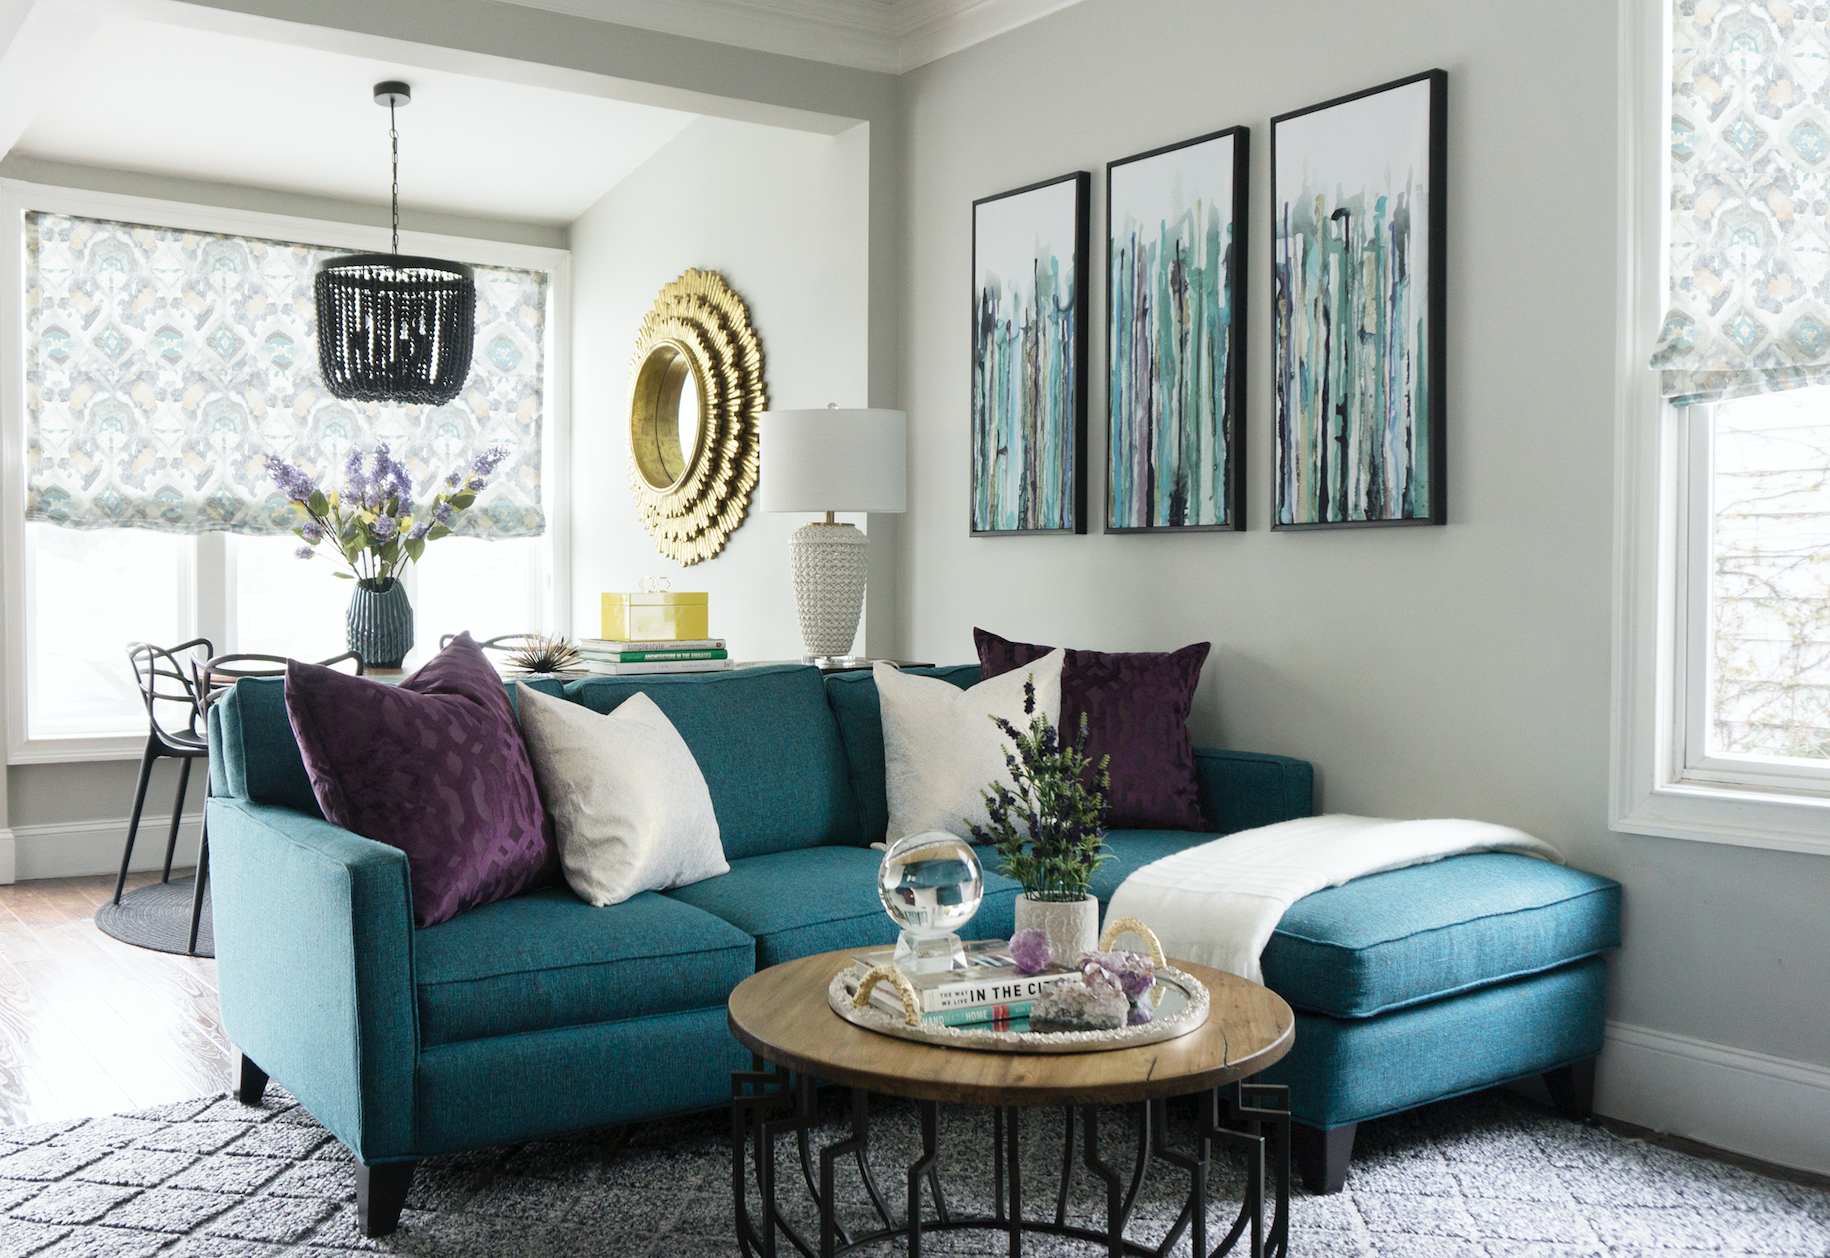 A Bright Open Concept Family Room With A Teal Sectional And Pops Of Accent Colors Living Room Designs Teal Living Rooms Family Room Decorating #teal #and #purple #living #room